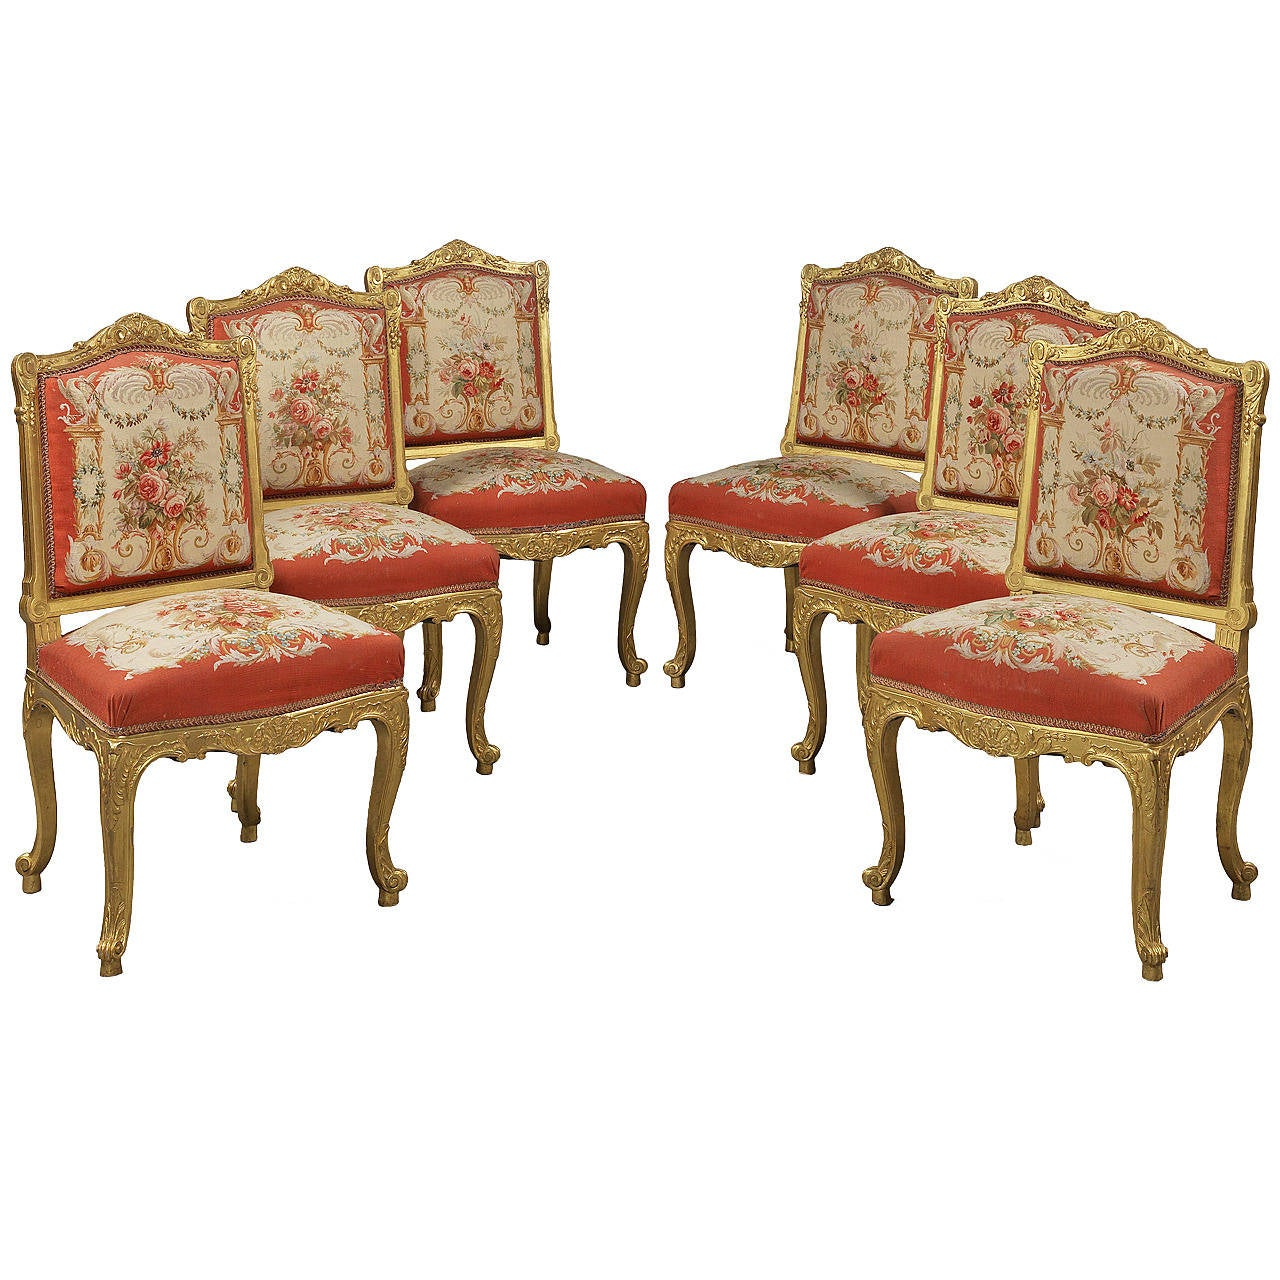 Set of 6 Giltwood and Tapestry Side Chairs, French, circa 1890